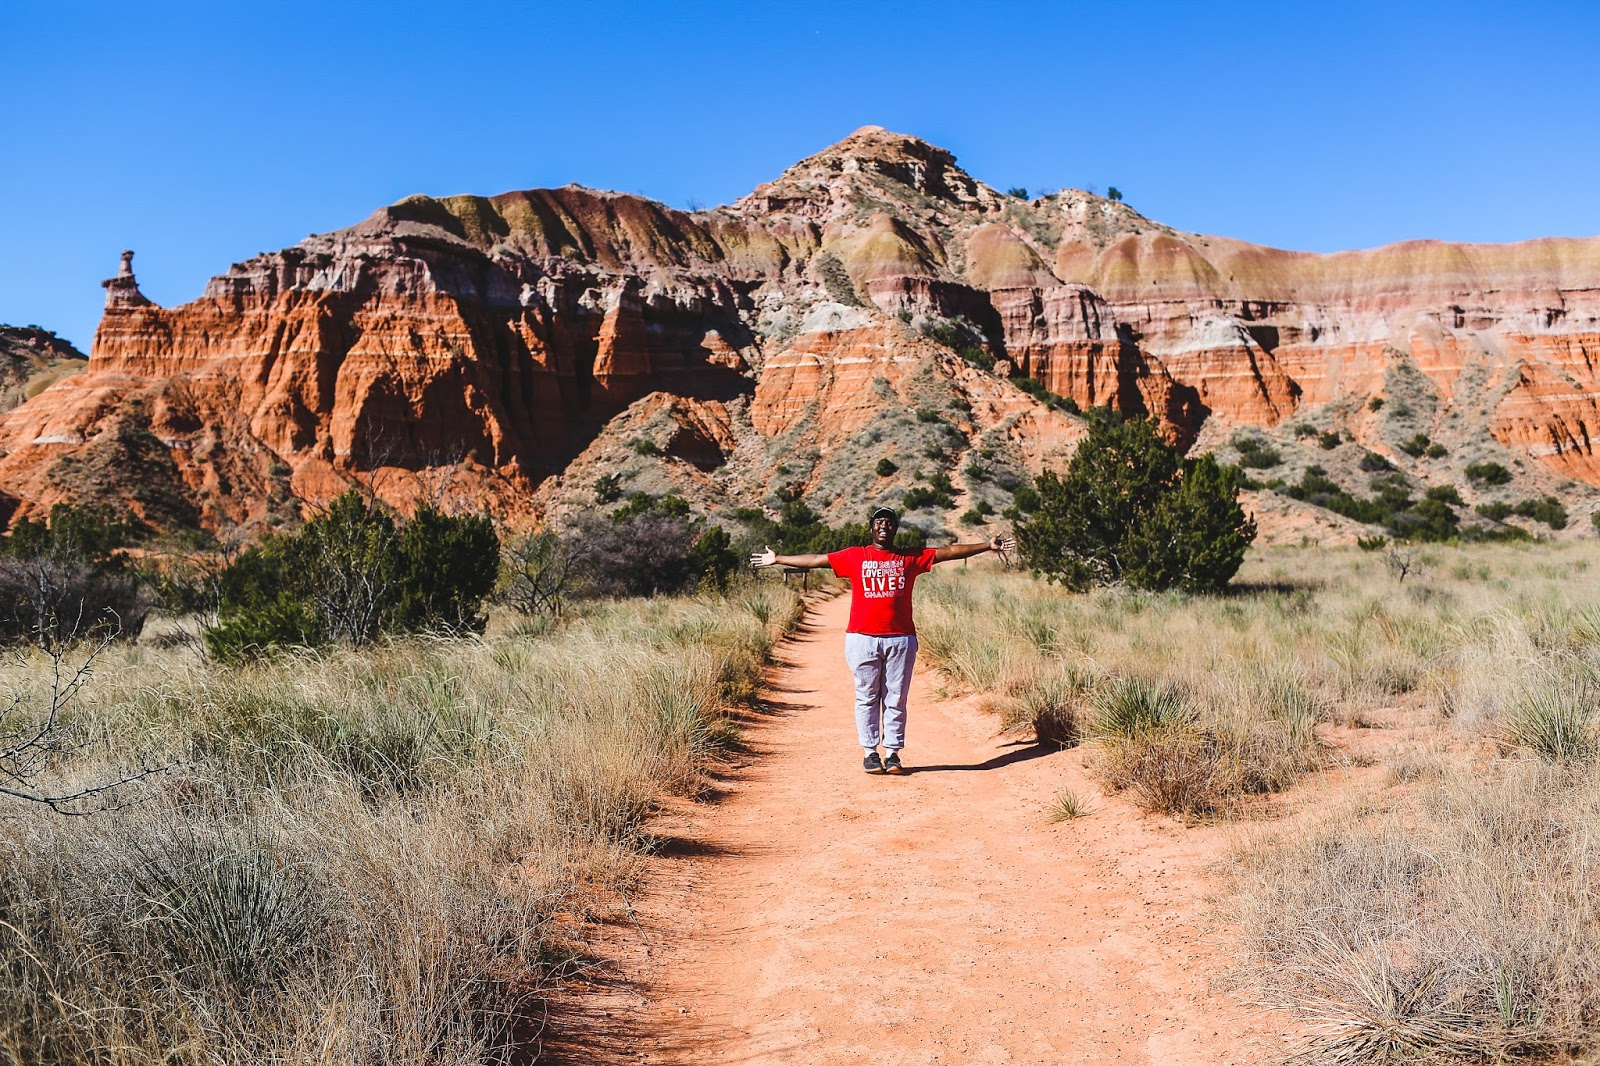 palo duro challenge essay For more on palo duro canyon state park, see the texas parks and wildlife website to check availability or reserve a palo duro cabin (rim or limited use) contact the texas parks office at (512) 389-8900.